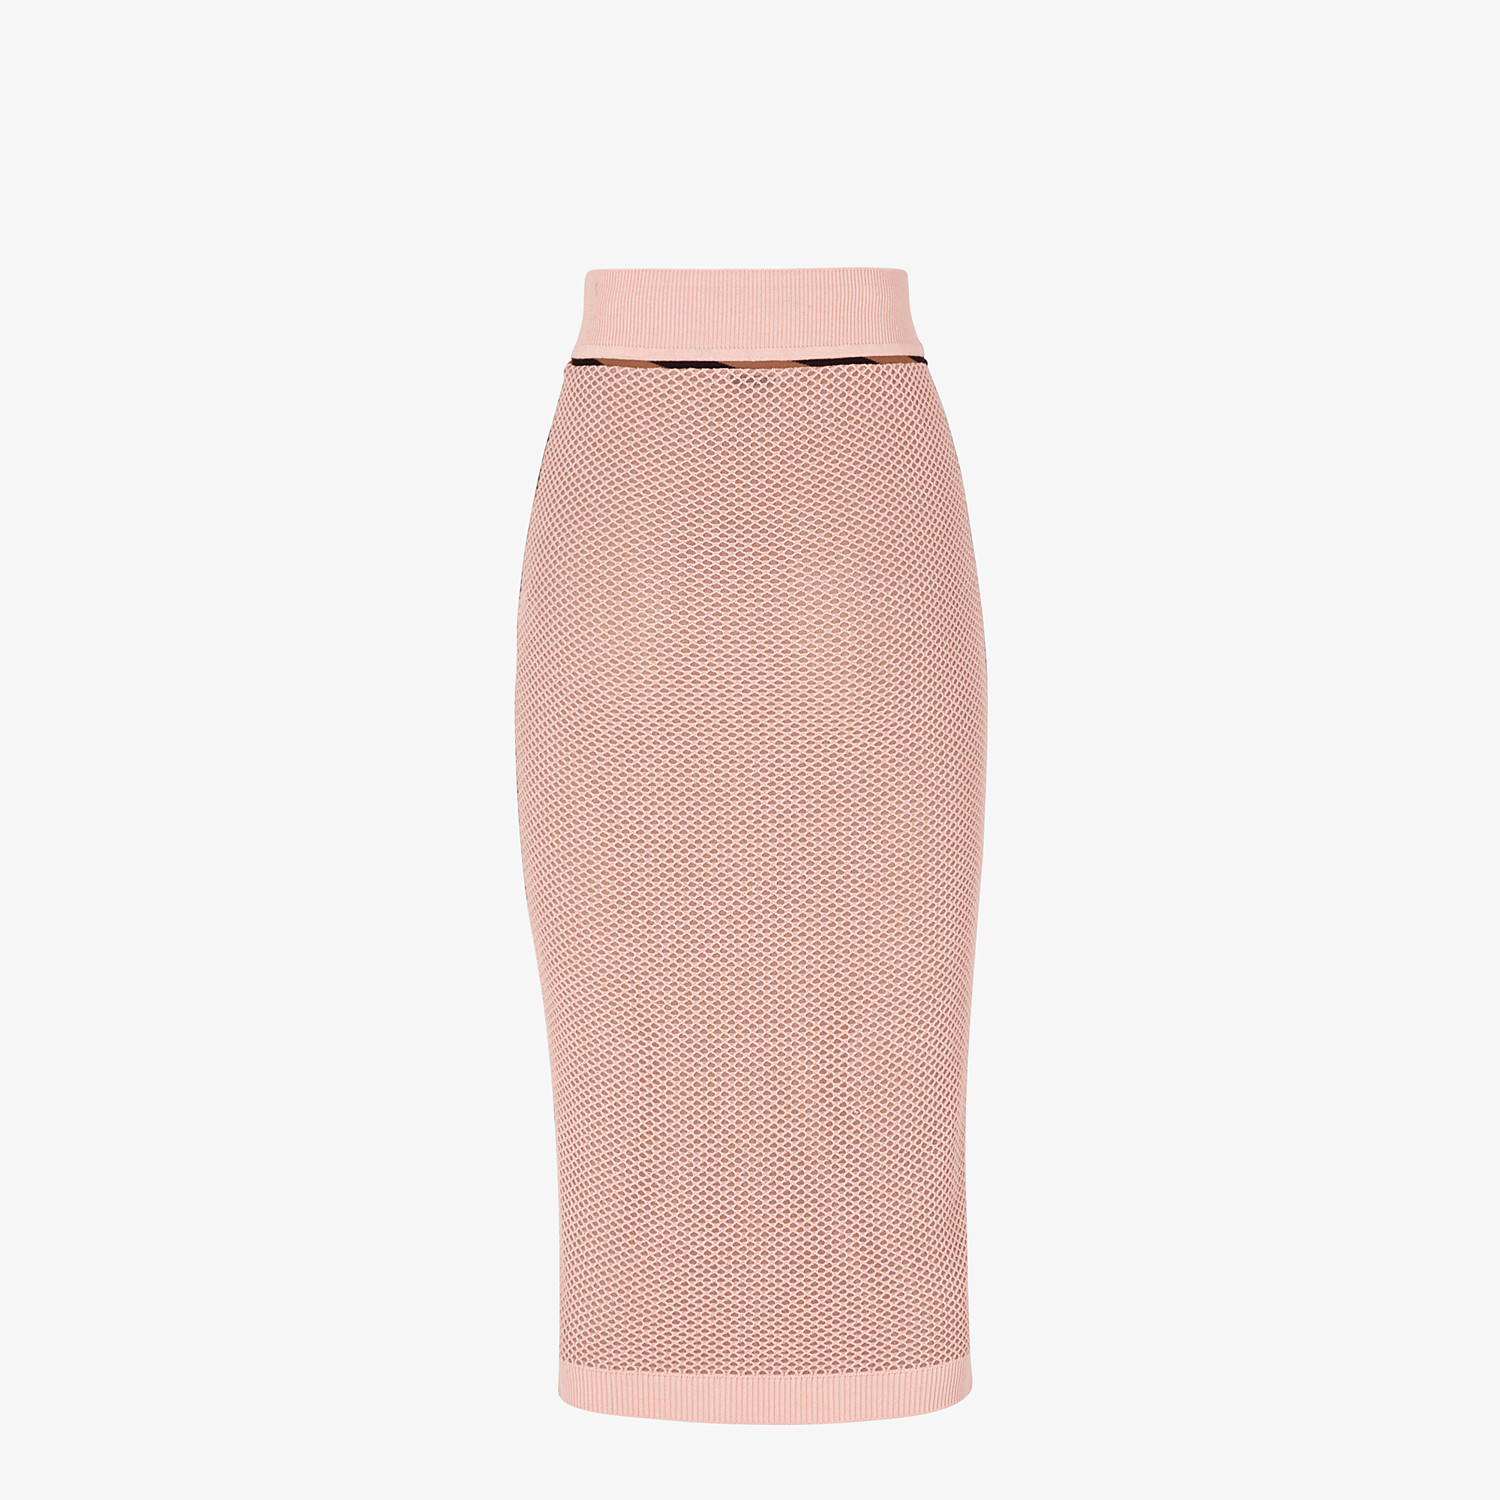 FENDI SKIRT - Pink mesh skirt - view 2 detail